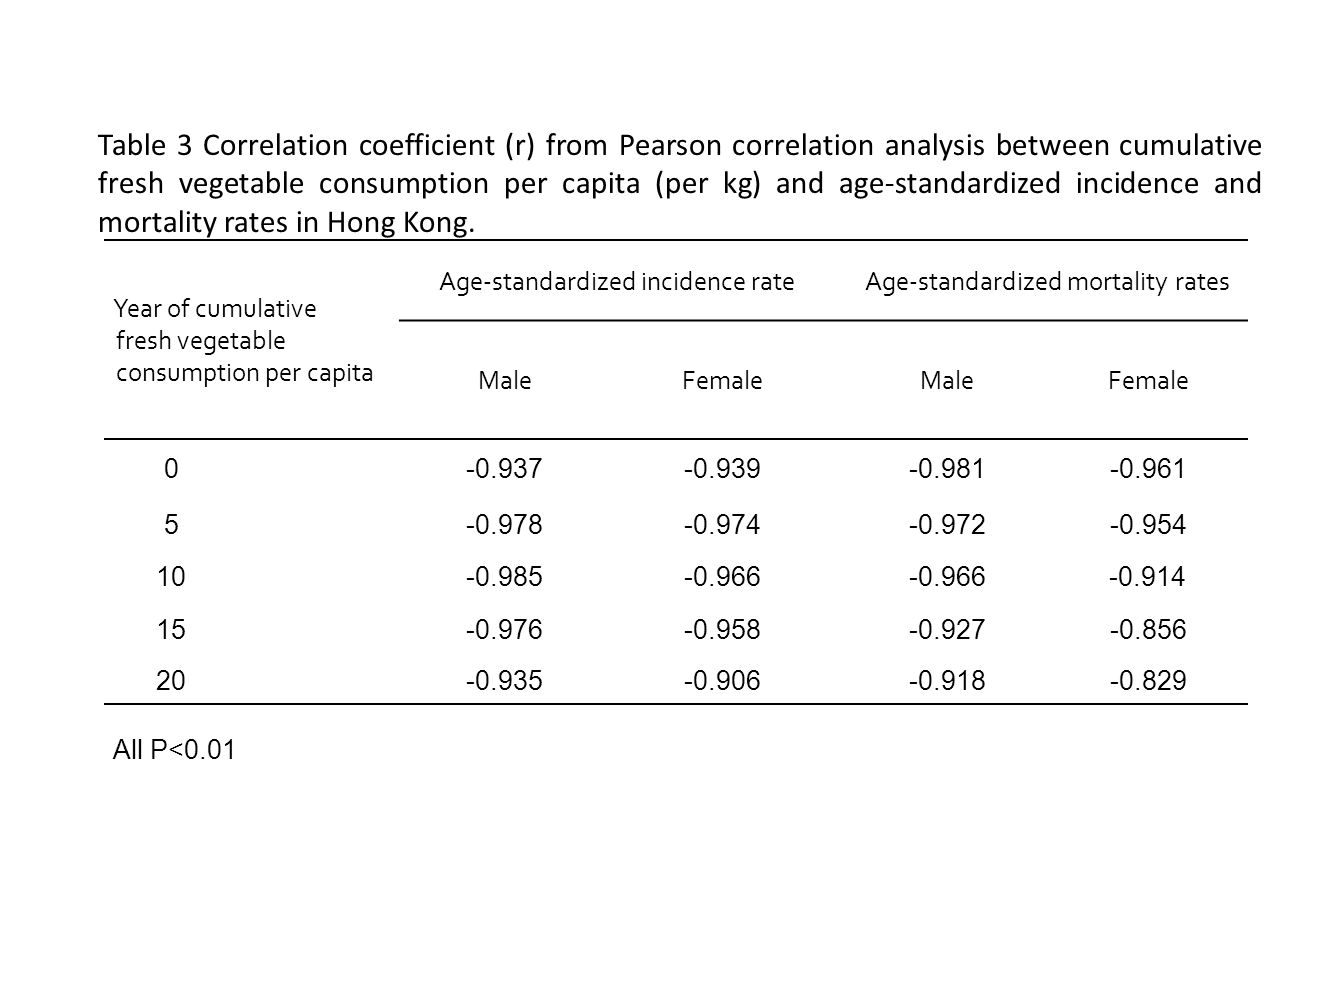 A fao commodity statistics ppt download for Correlation coefficient r table